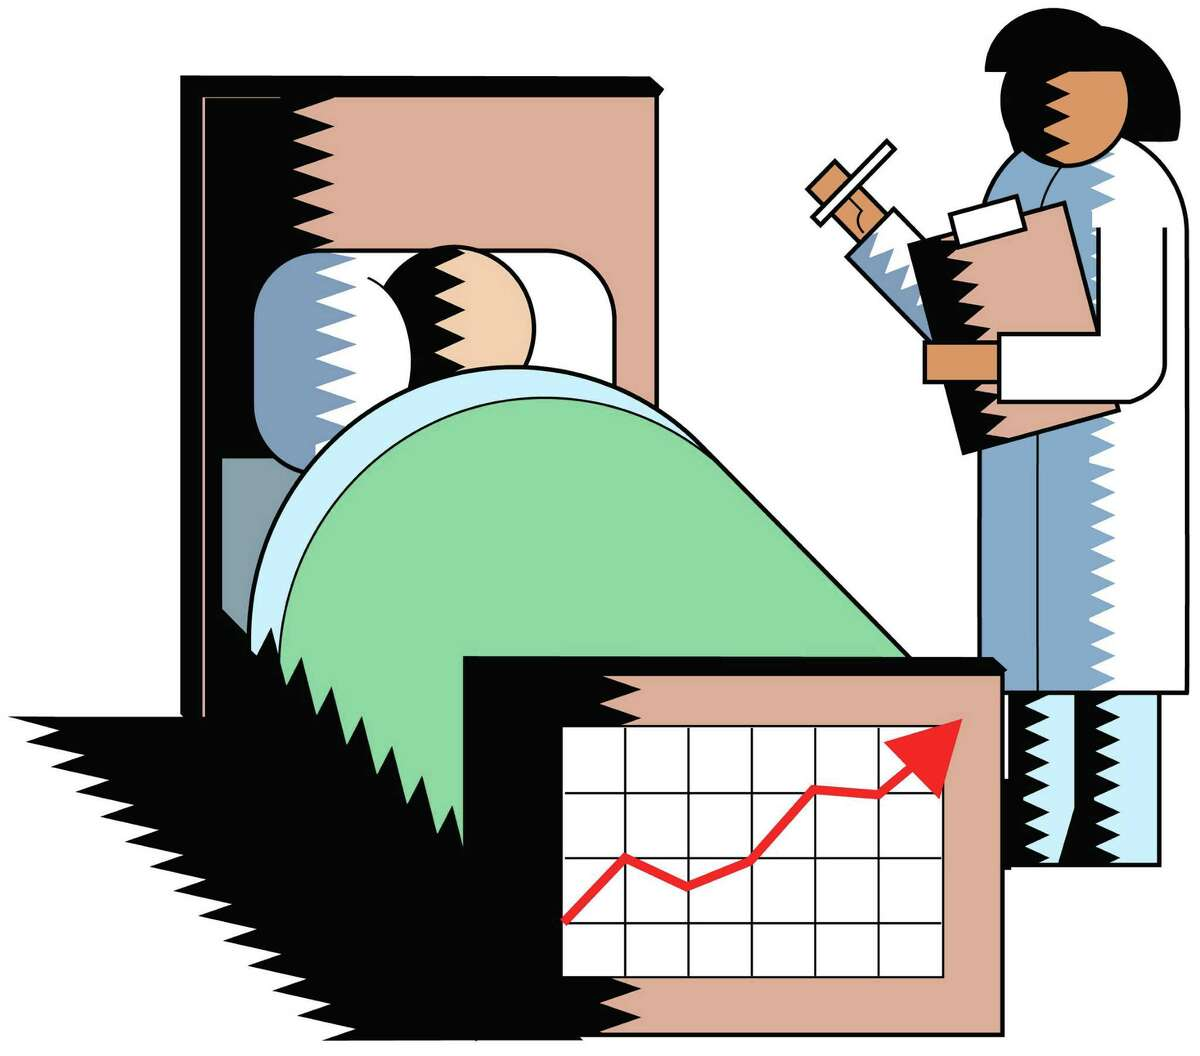 A study indicates hospitals with the highest prices showed little evidence of providing better quality care.